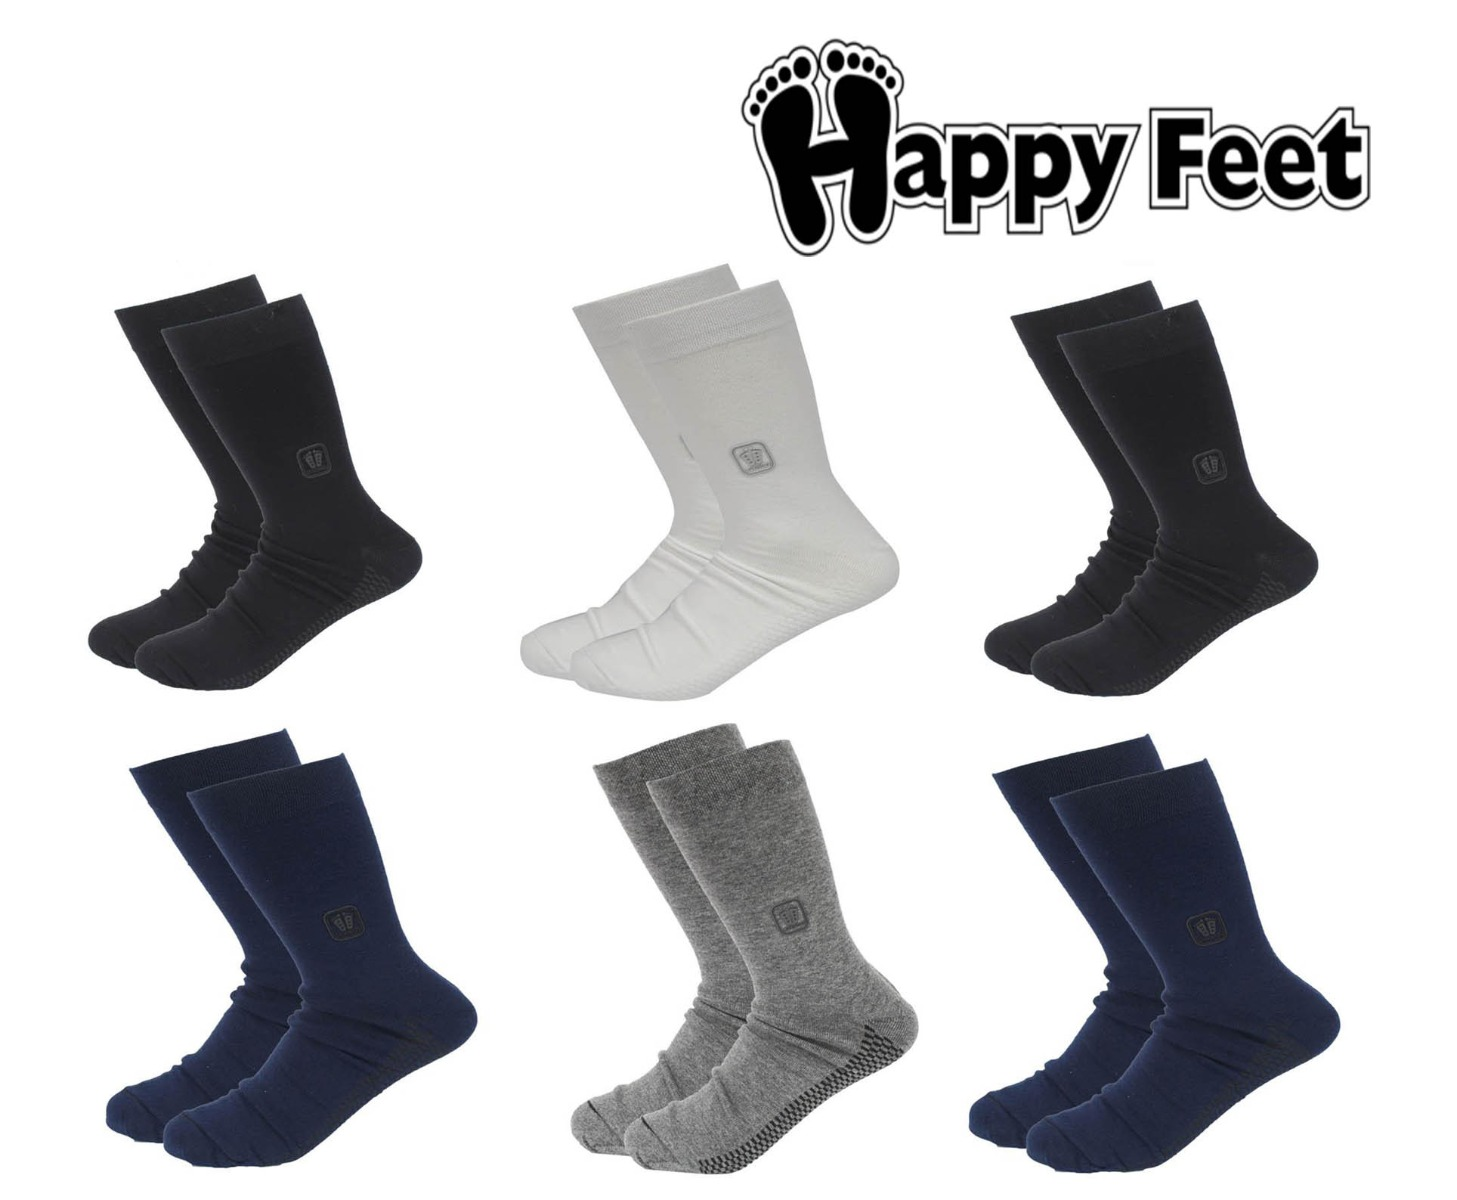 Happy Feet Pack of 6 Pairs of Pure Cotton Antibacterial Socks for Men (1039)